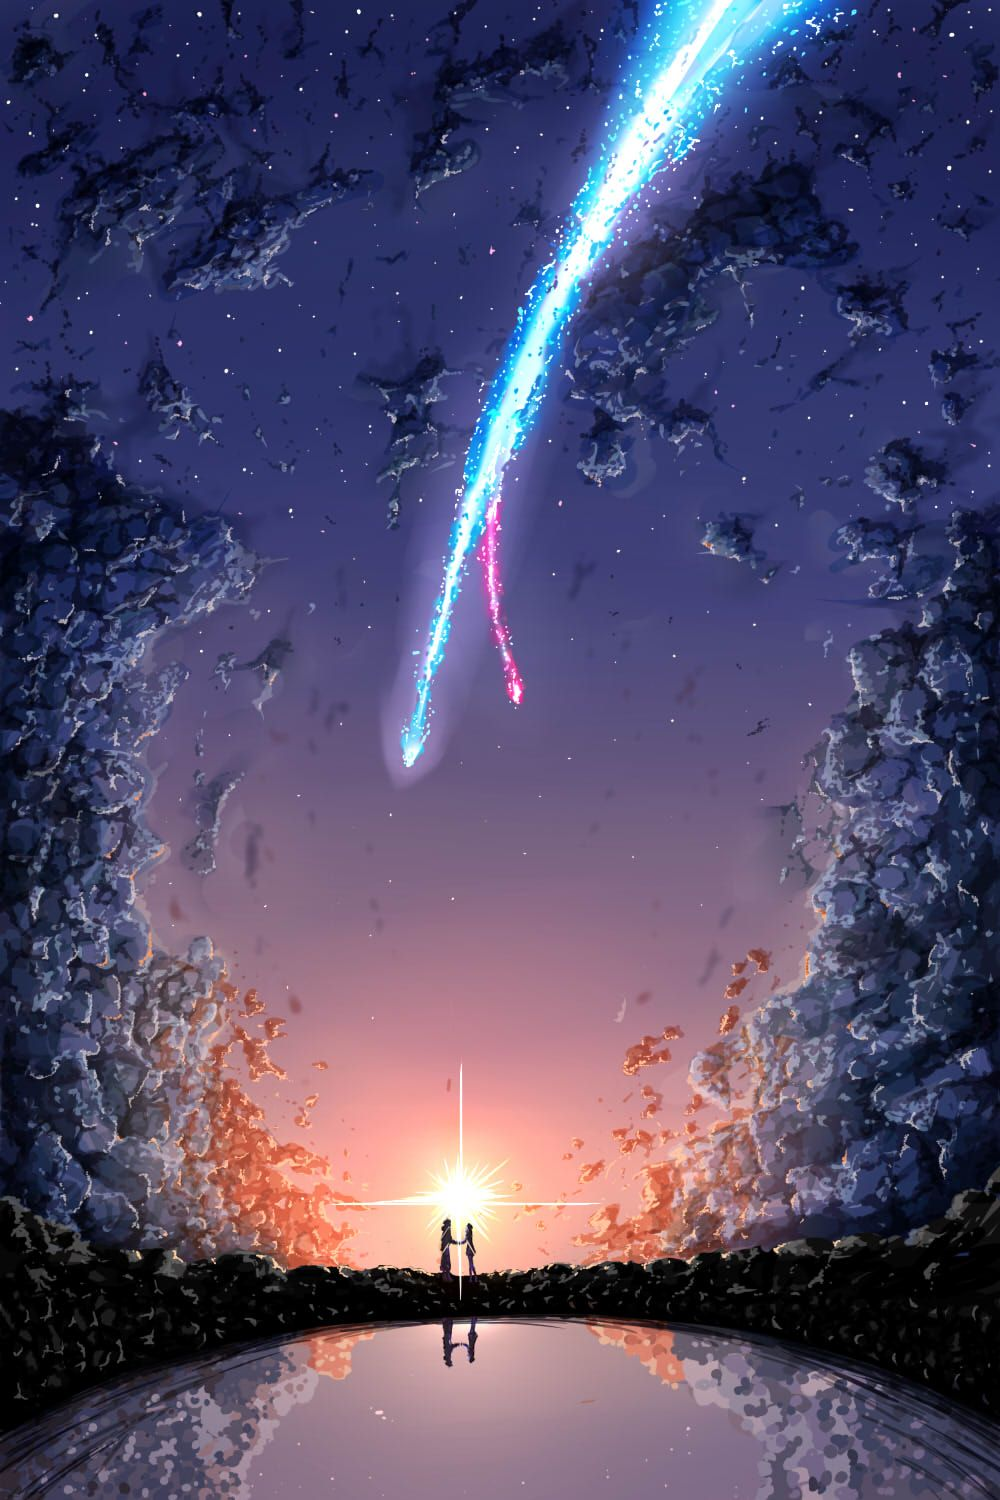 Your Name. Art - ID: 91875 - Art Abyss